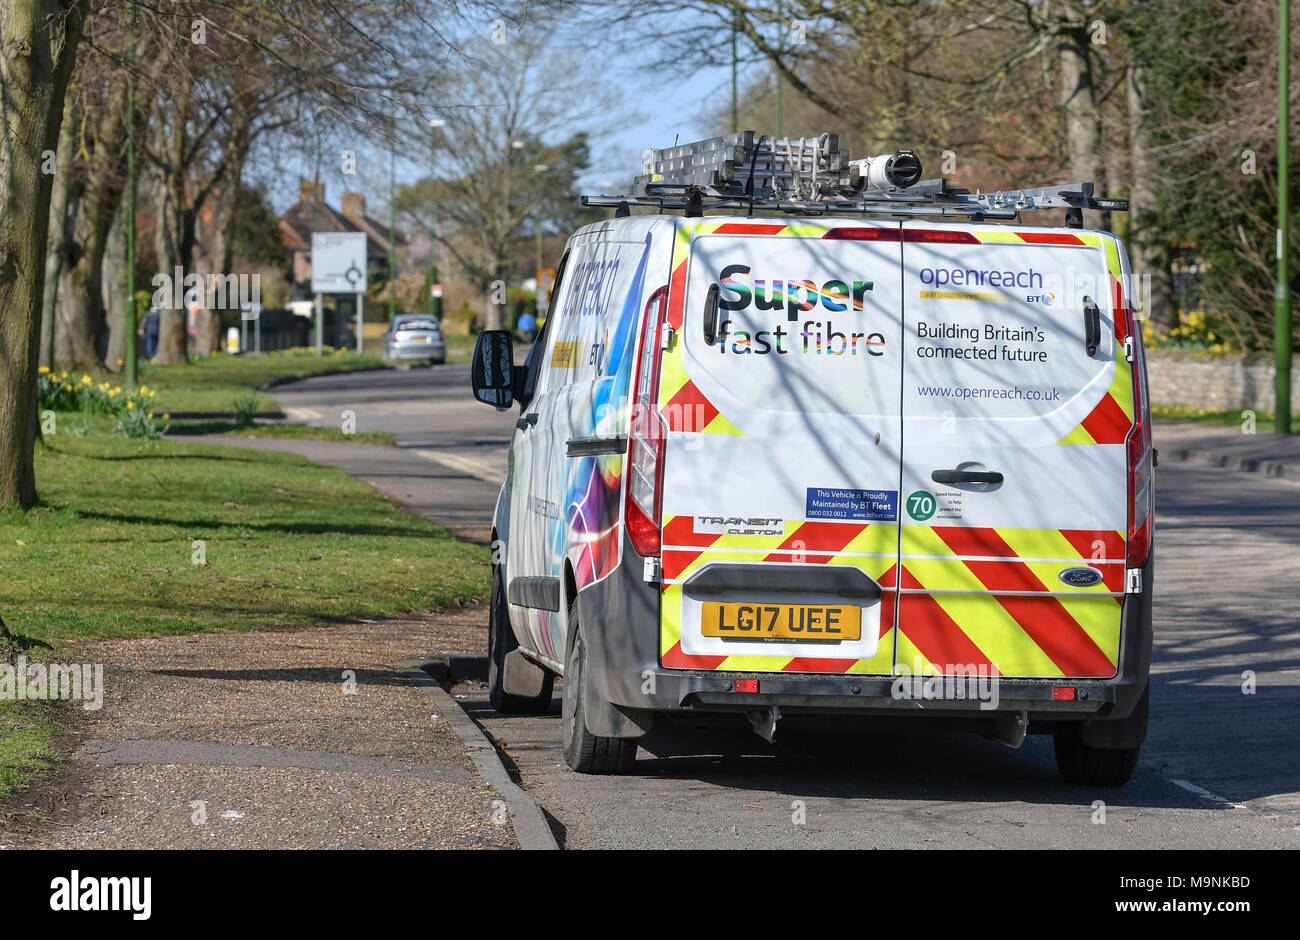 Openreach Van parked by the roadside while engineers install fibre optic broadband Internet (FTTC) to a residential home in England, UK. - Stock Image